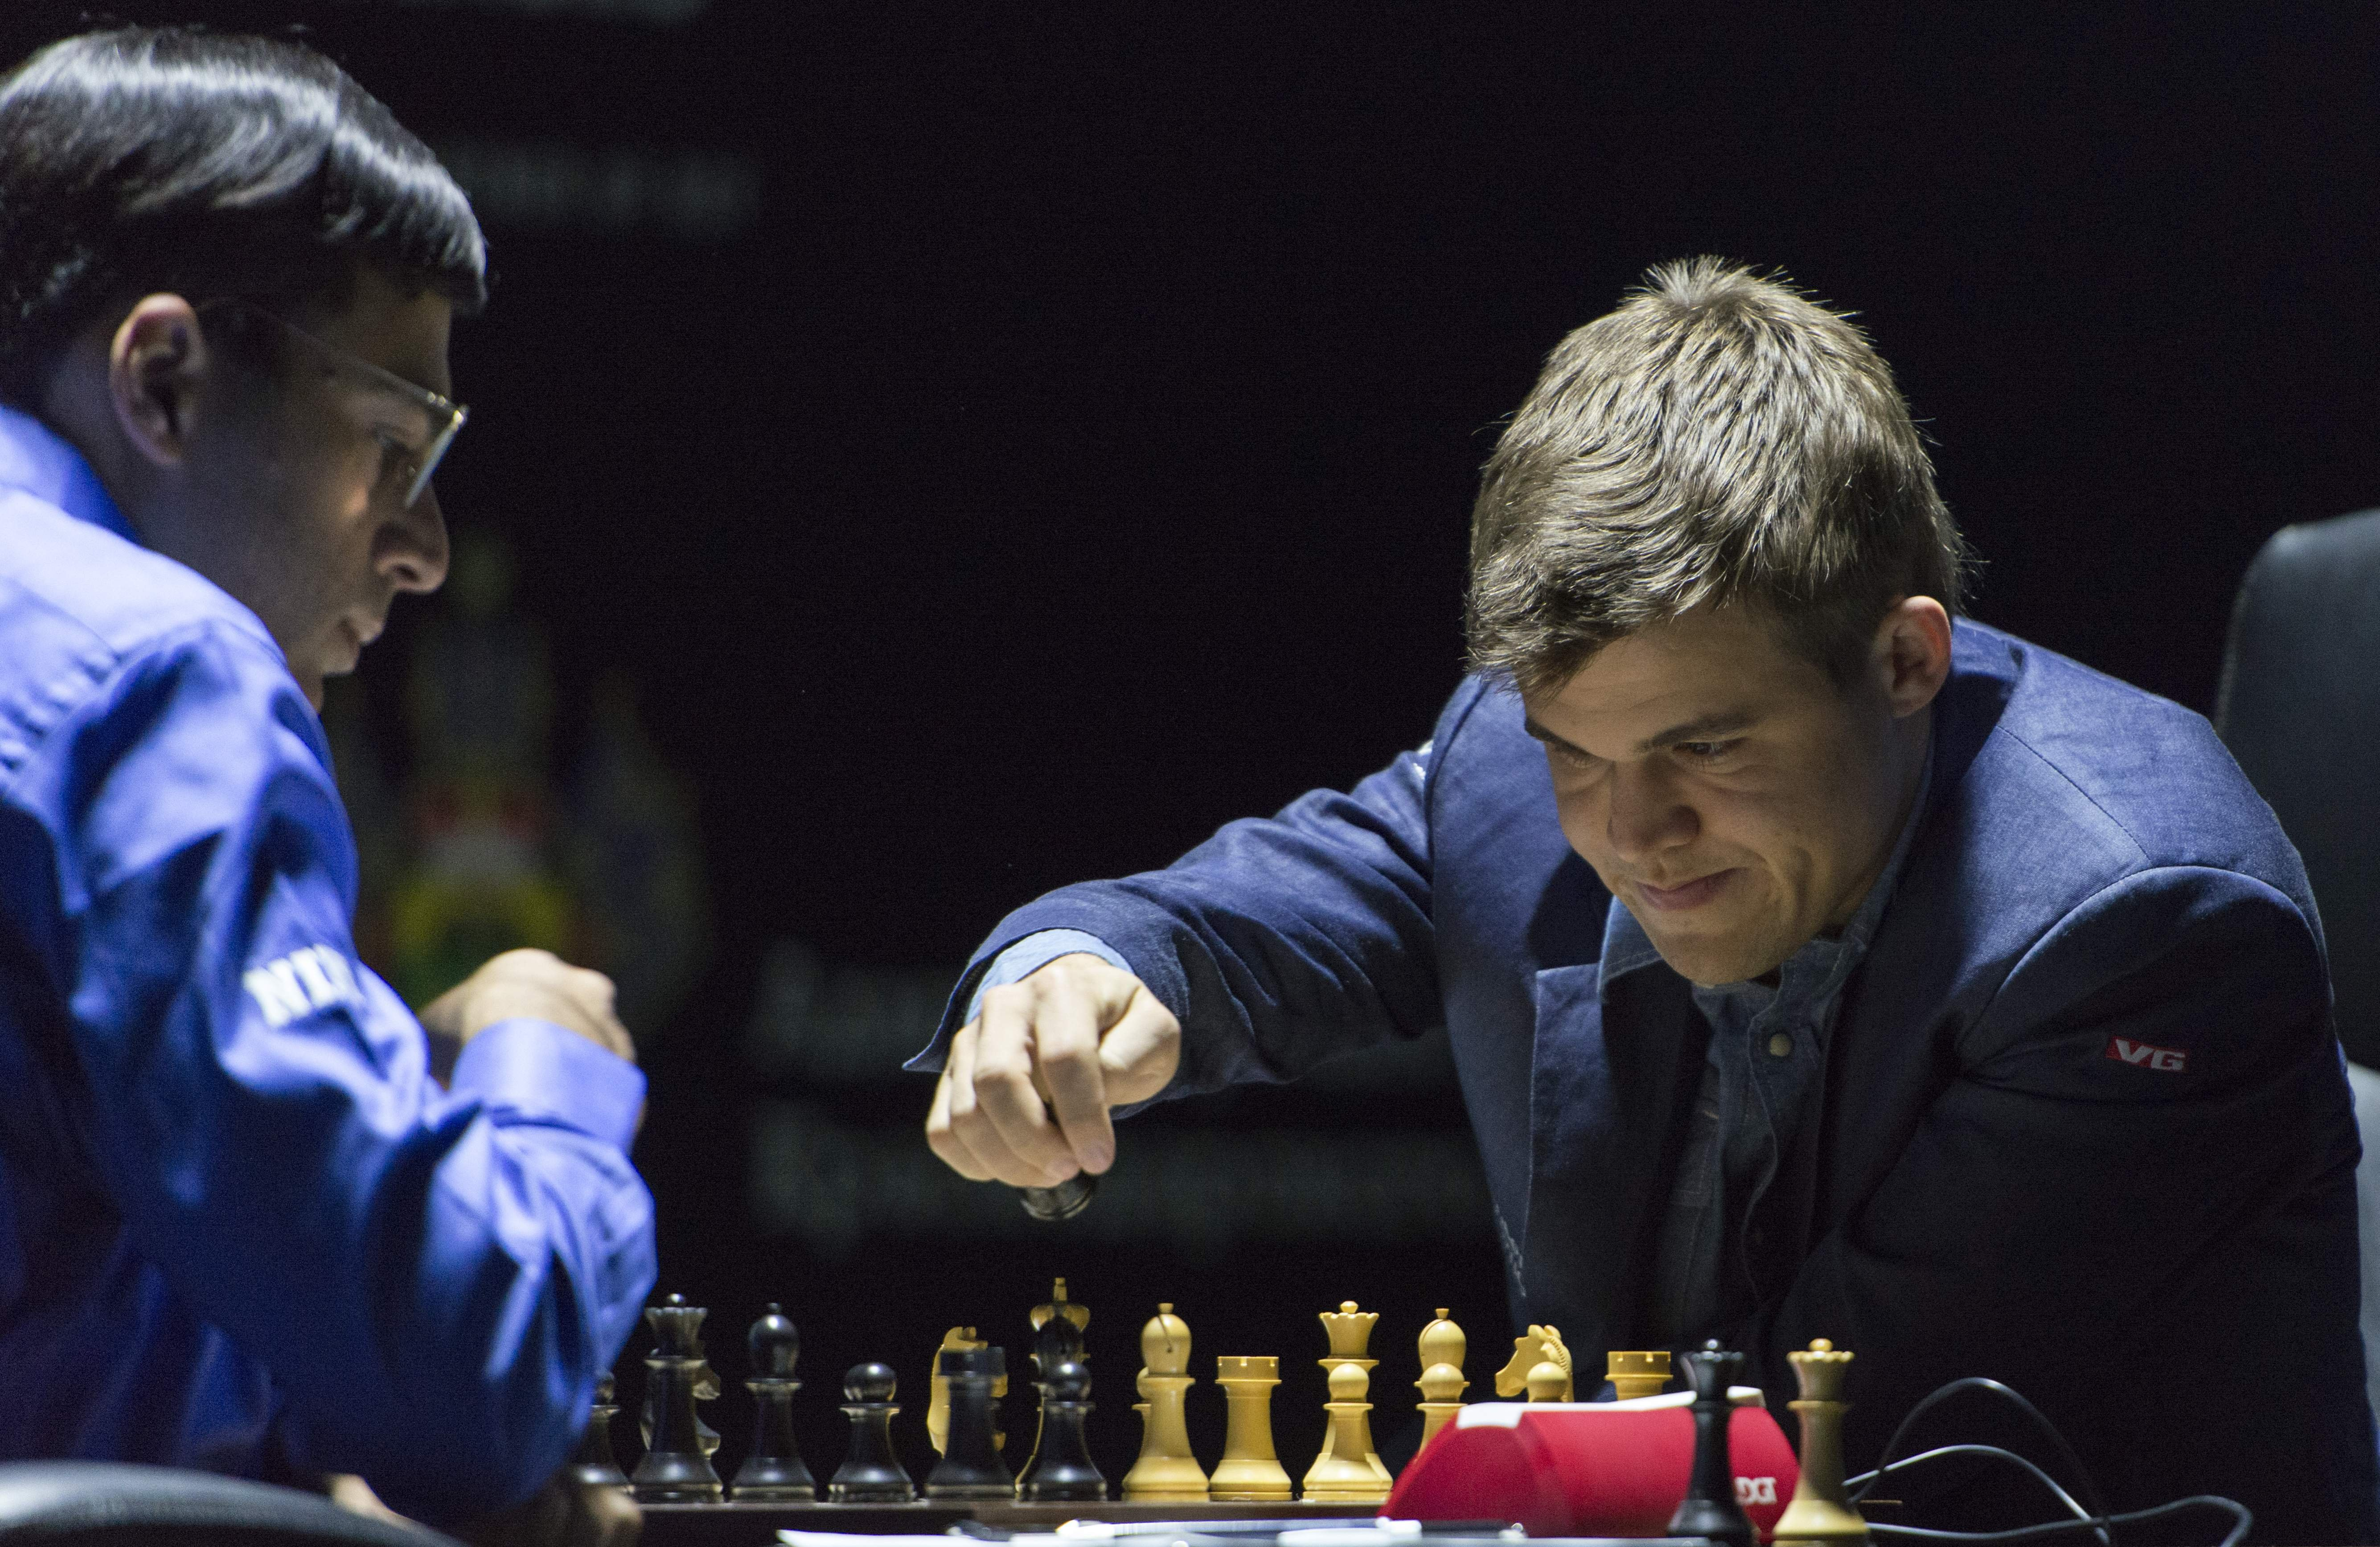 Norway's Magnus Carlsen, currently the top ranked chess player in the world makes a move as he plays against India's former World Champion Vishwanathan Anand at the FIDE World Chess Championship Match in Sochi, Russia on Nov. 9, 2014.